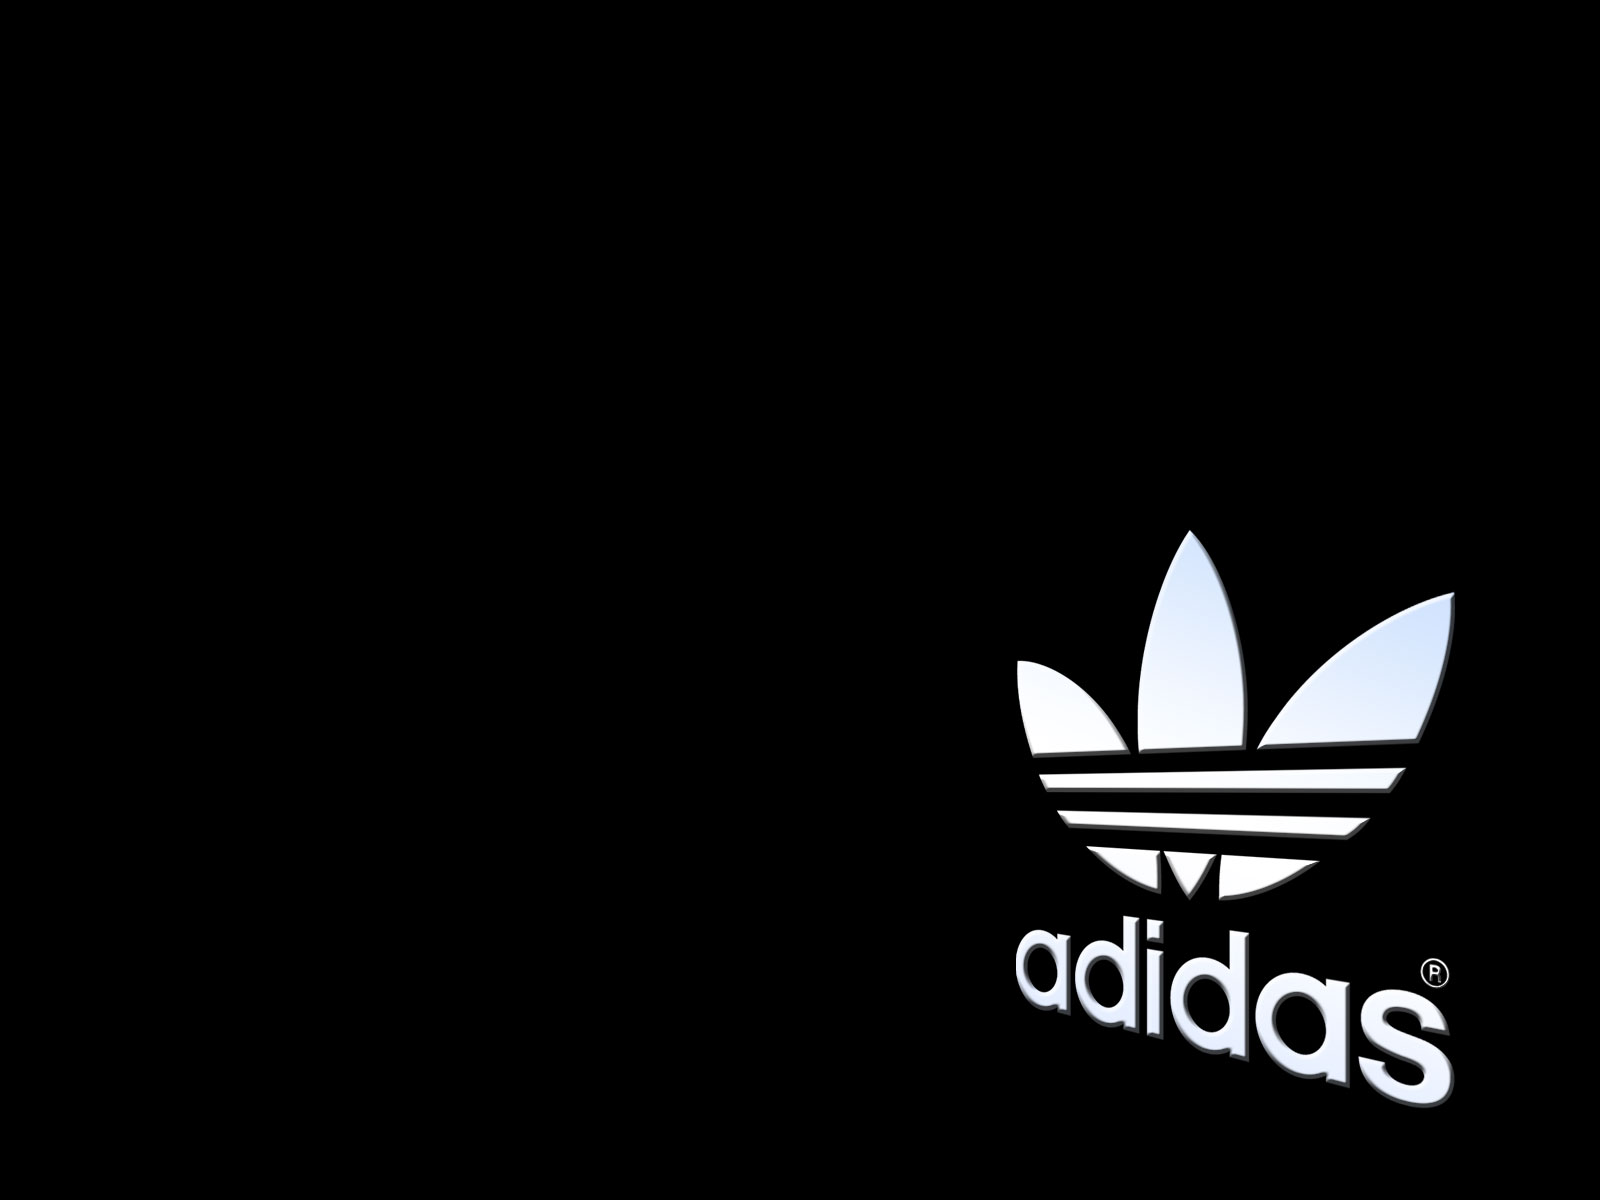 Adidas 3D Logo Wallpapers HD